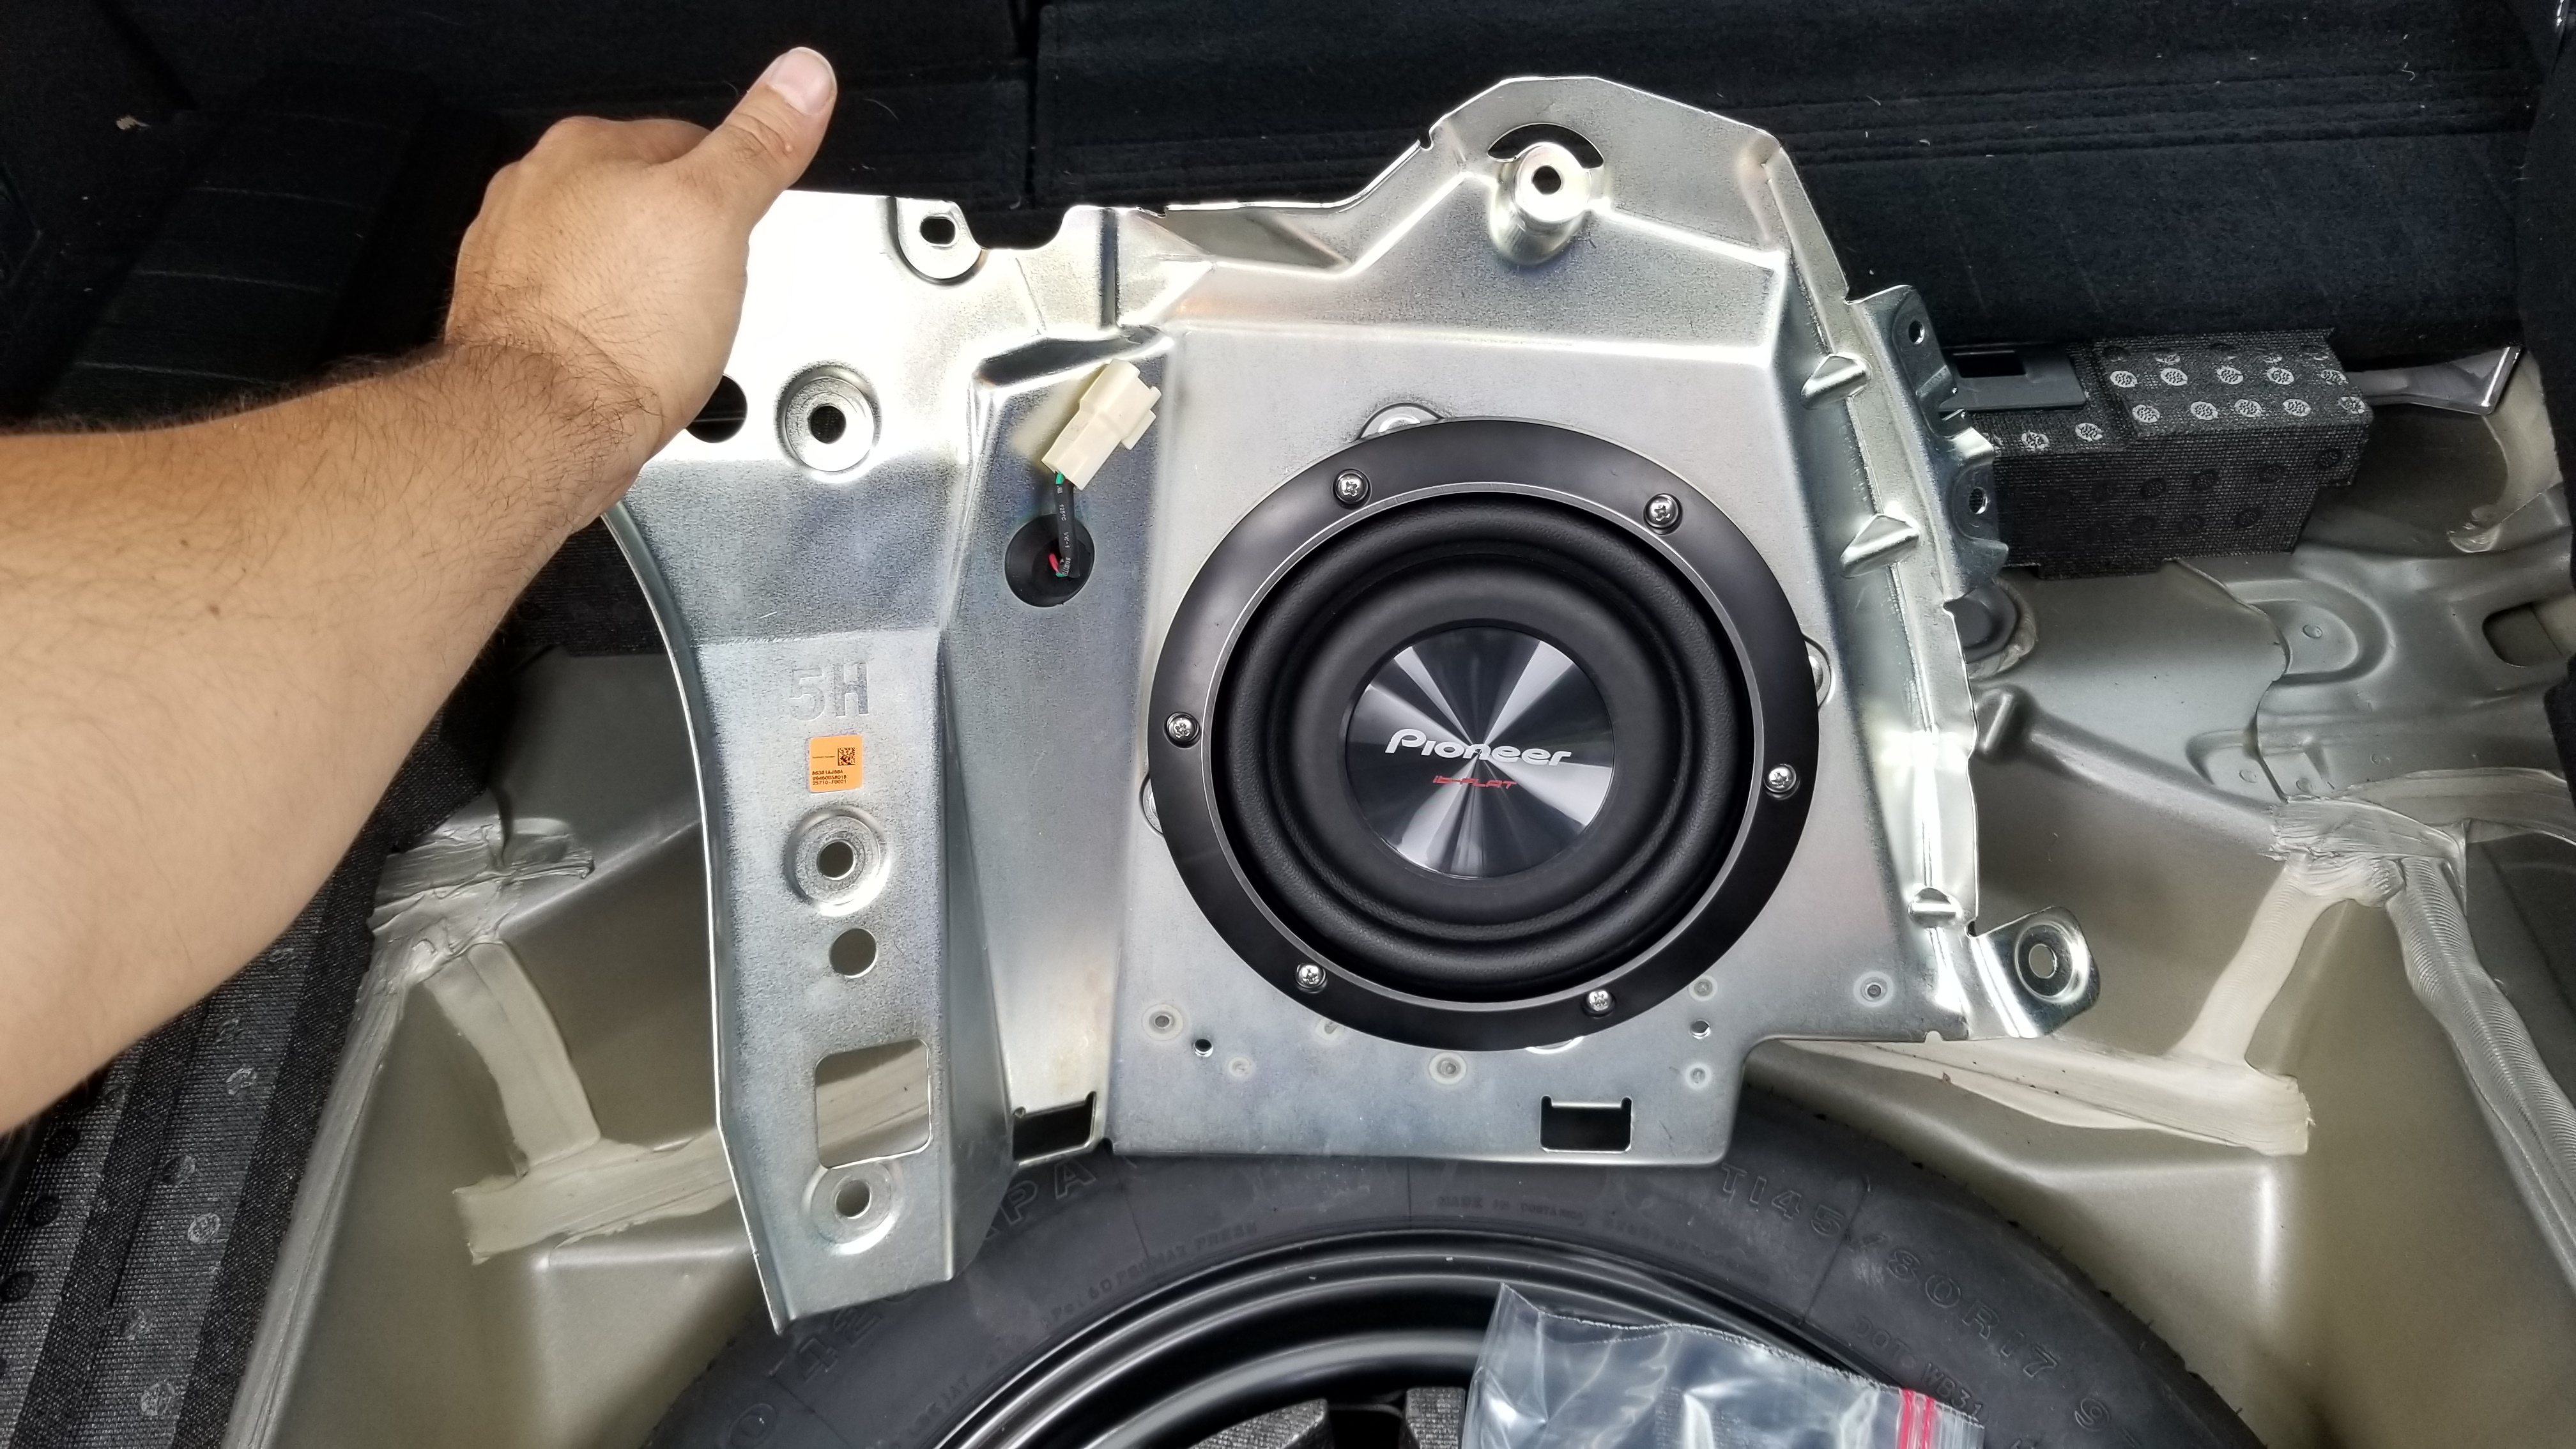 Installed the new Pioneer subwoofer. - Subaru Outback - Subaru Outback Forums